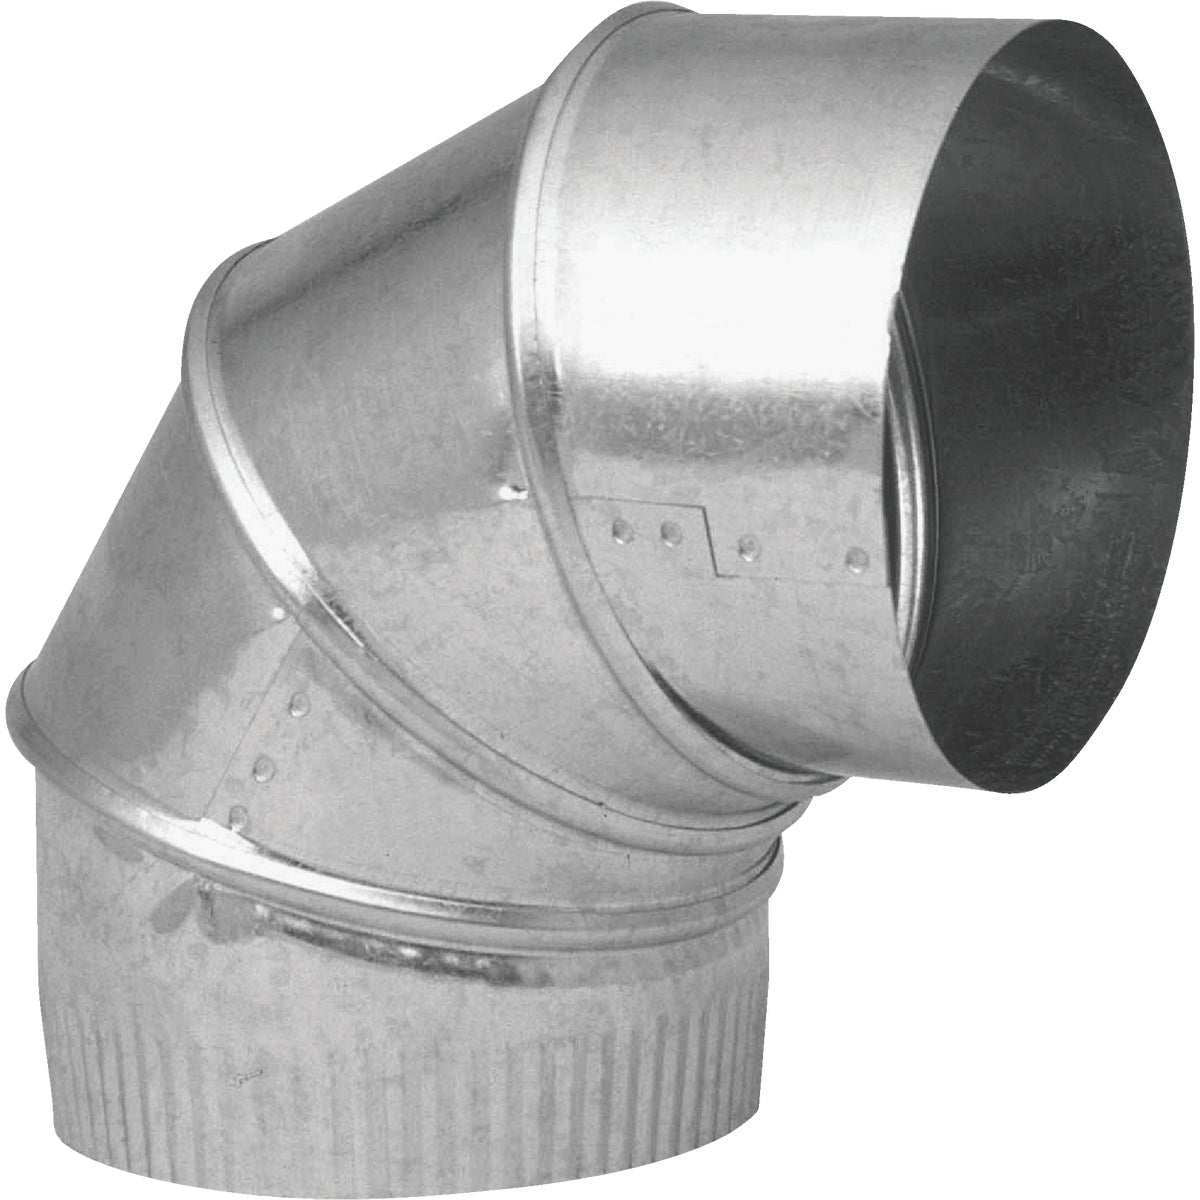 "8"" 24GA GALV ADJ ELBOW - GV0301-C by Imperial Mfg Group"